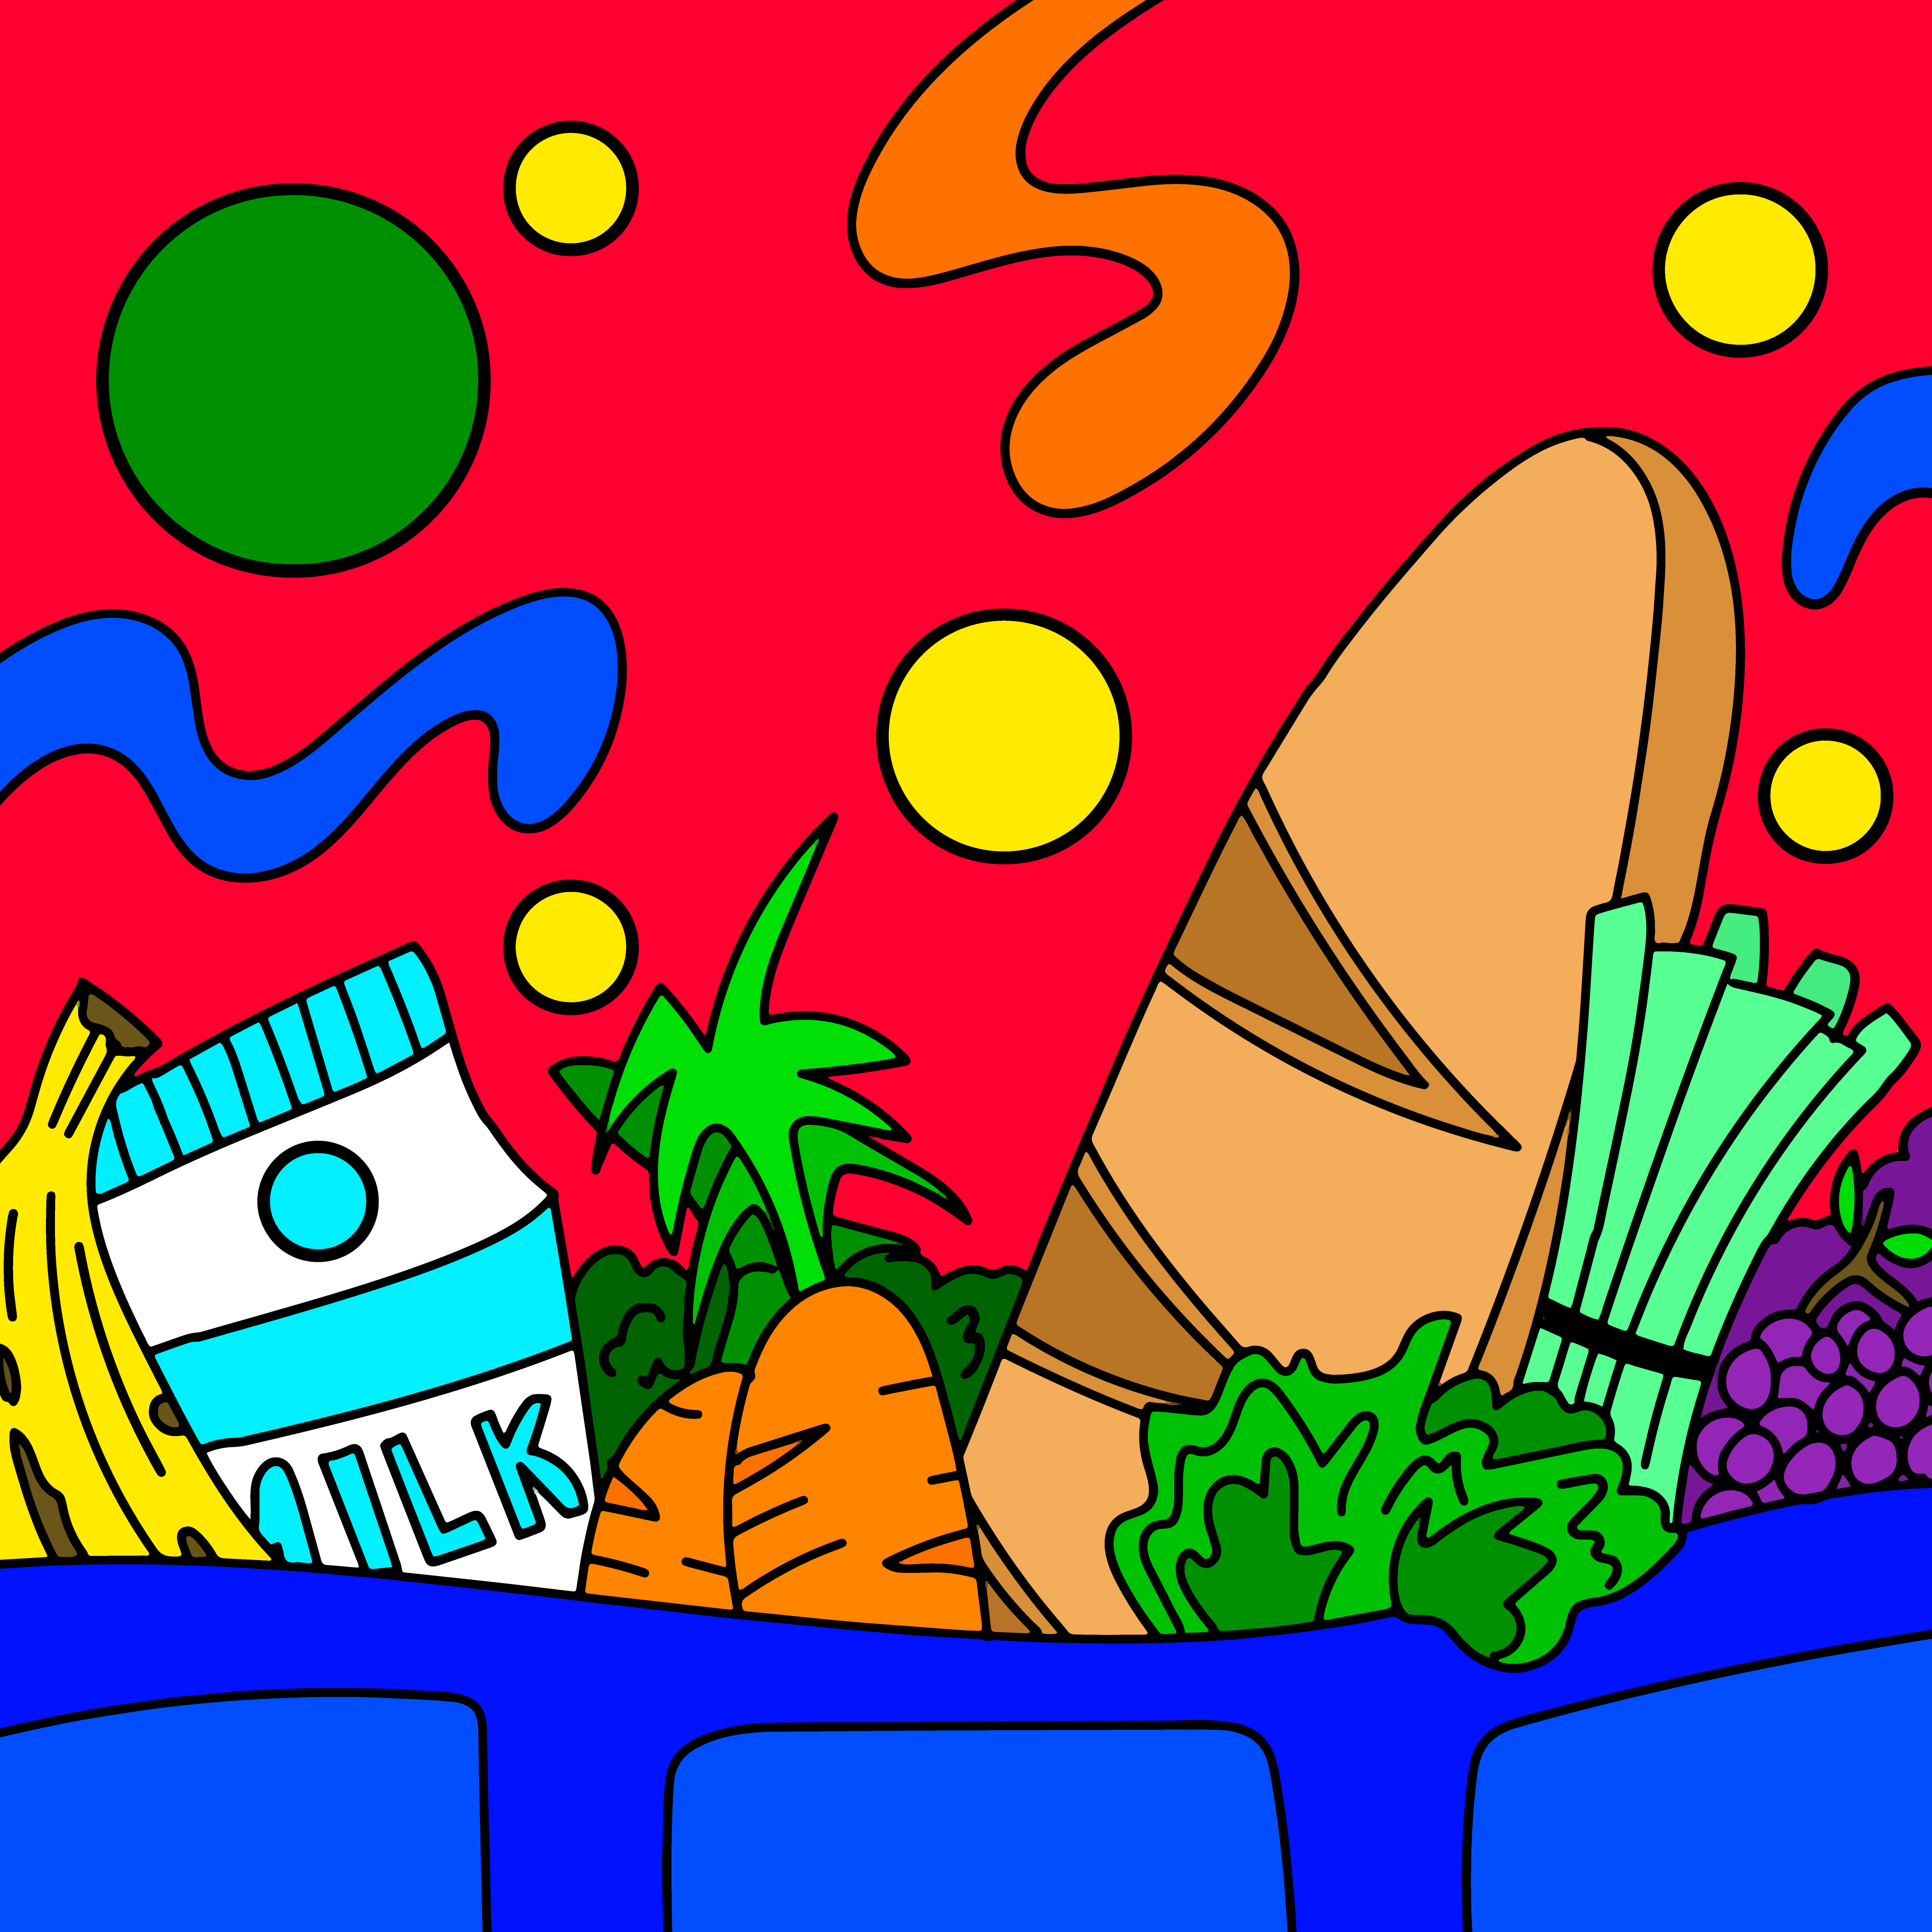 Nutrition article illustration by Mina Tocalini for 360 MAGAZINE